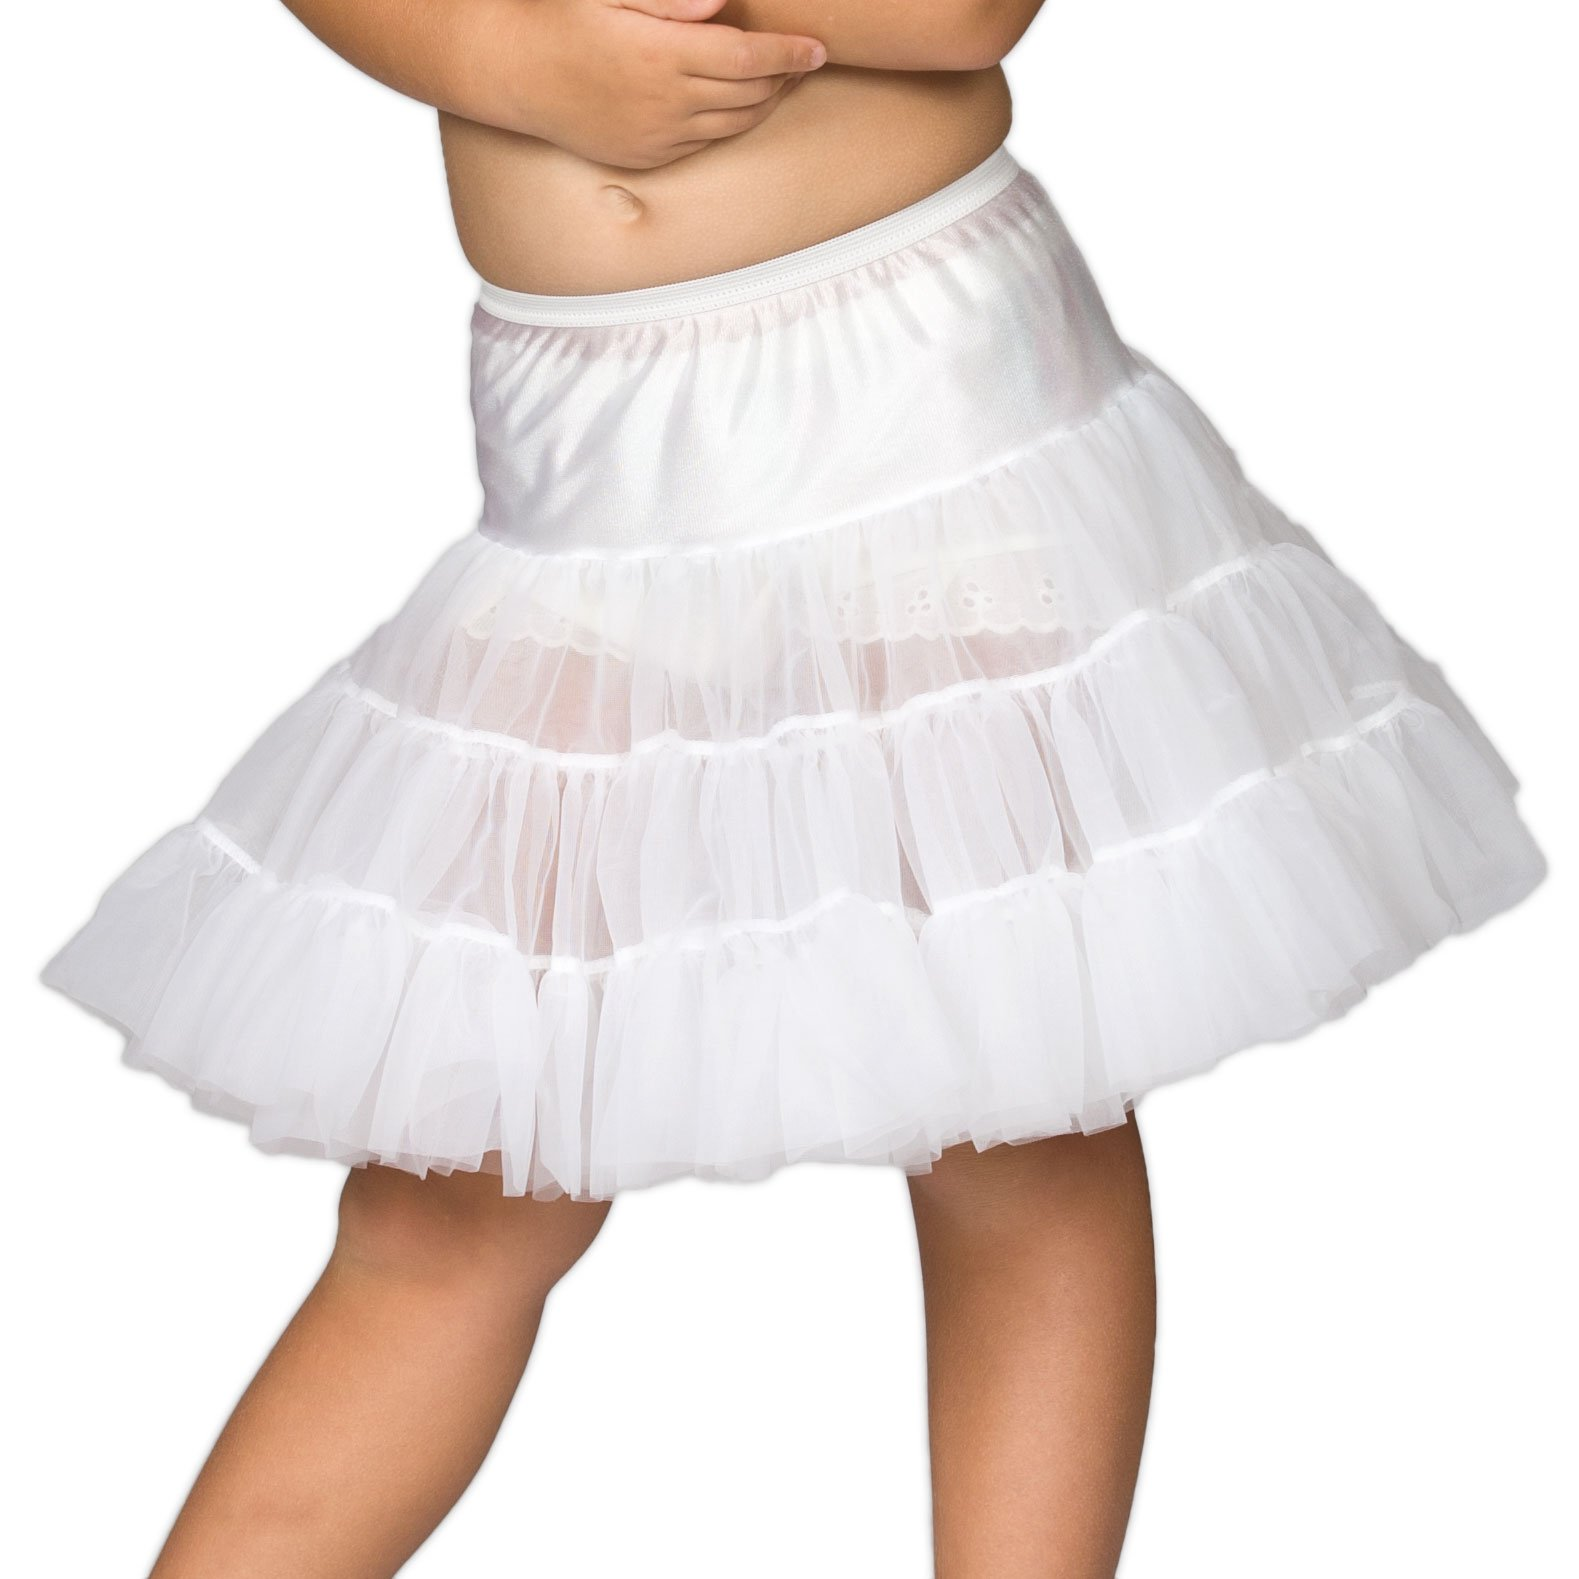 Laura Dare Kids Bouffant Slip (Toddler/Little Kids/Big Kids) White - SIZE 5